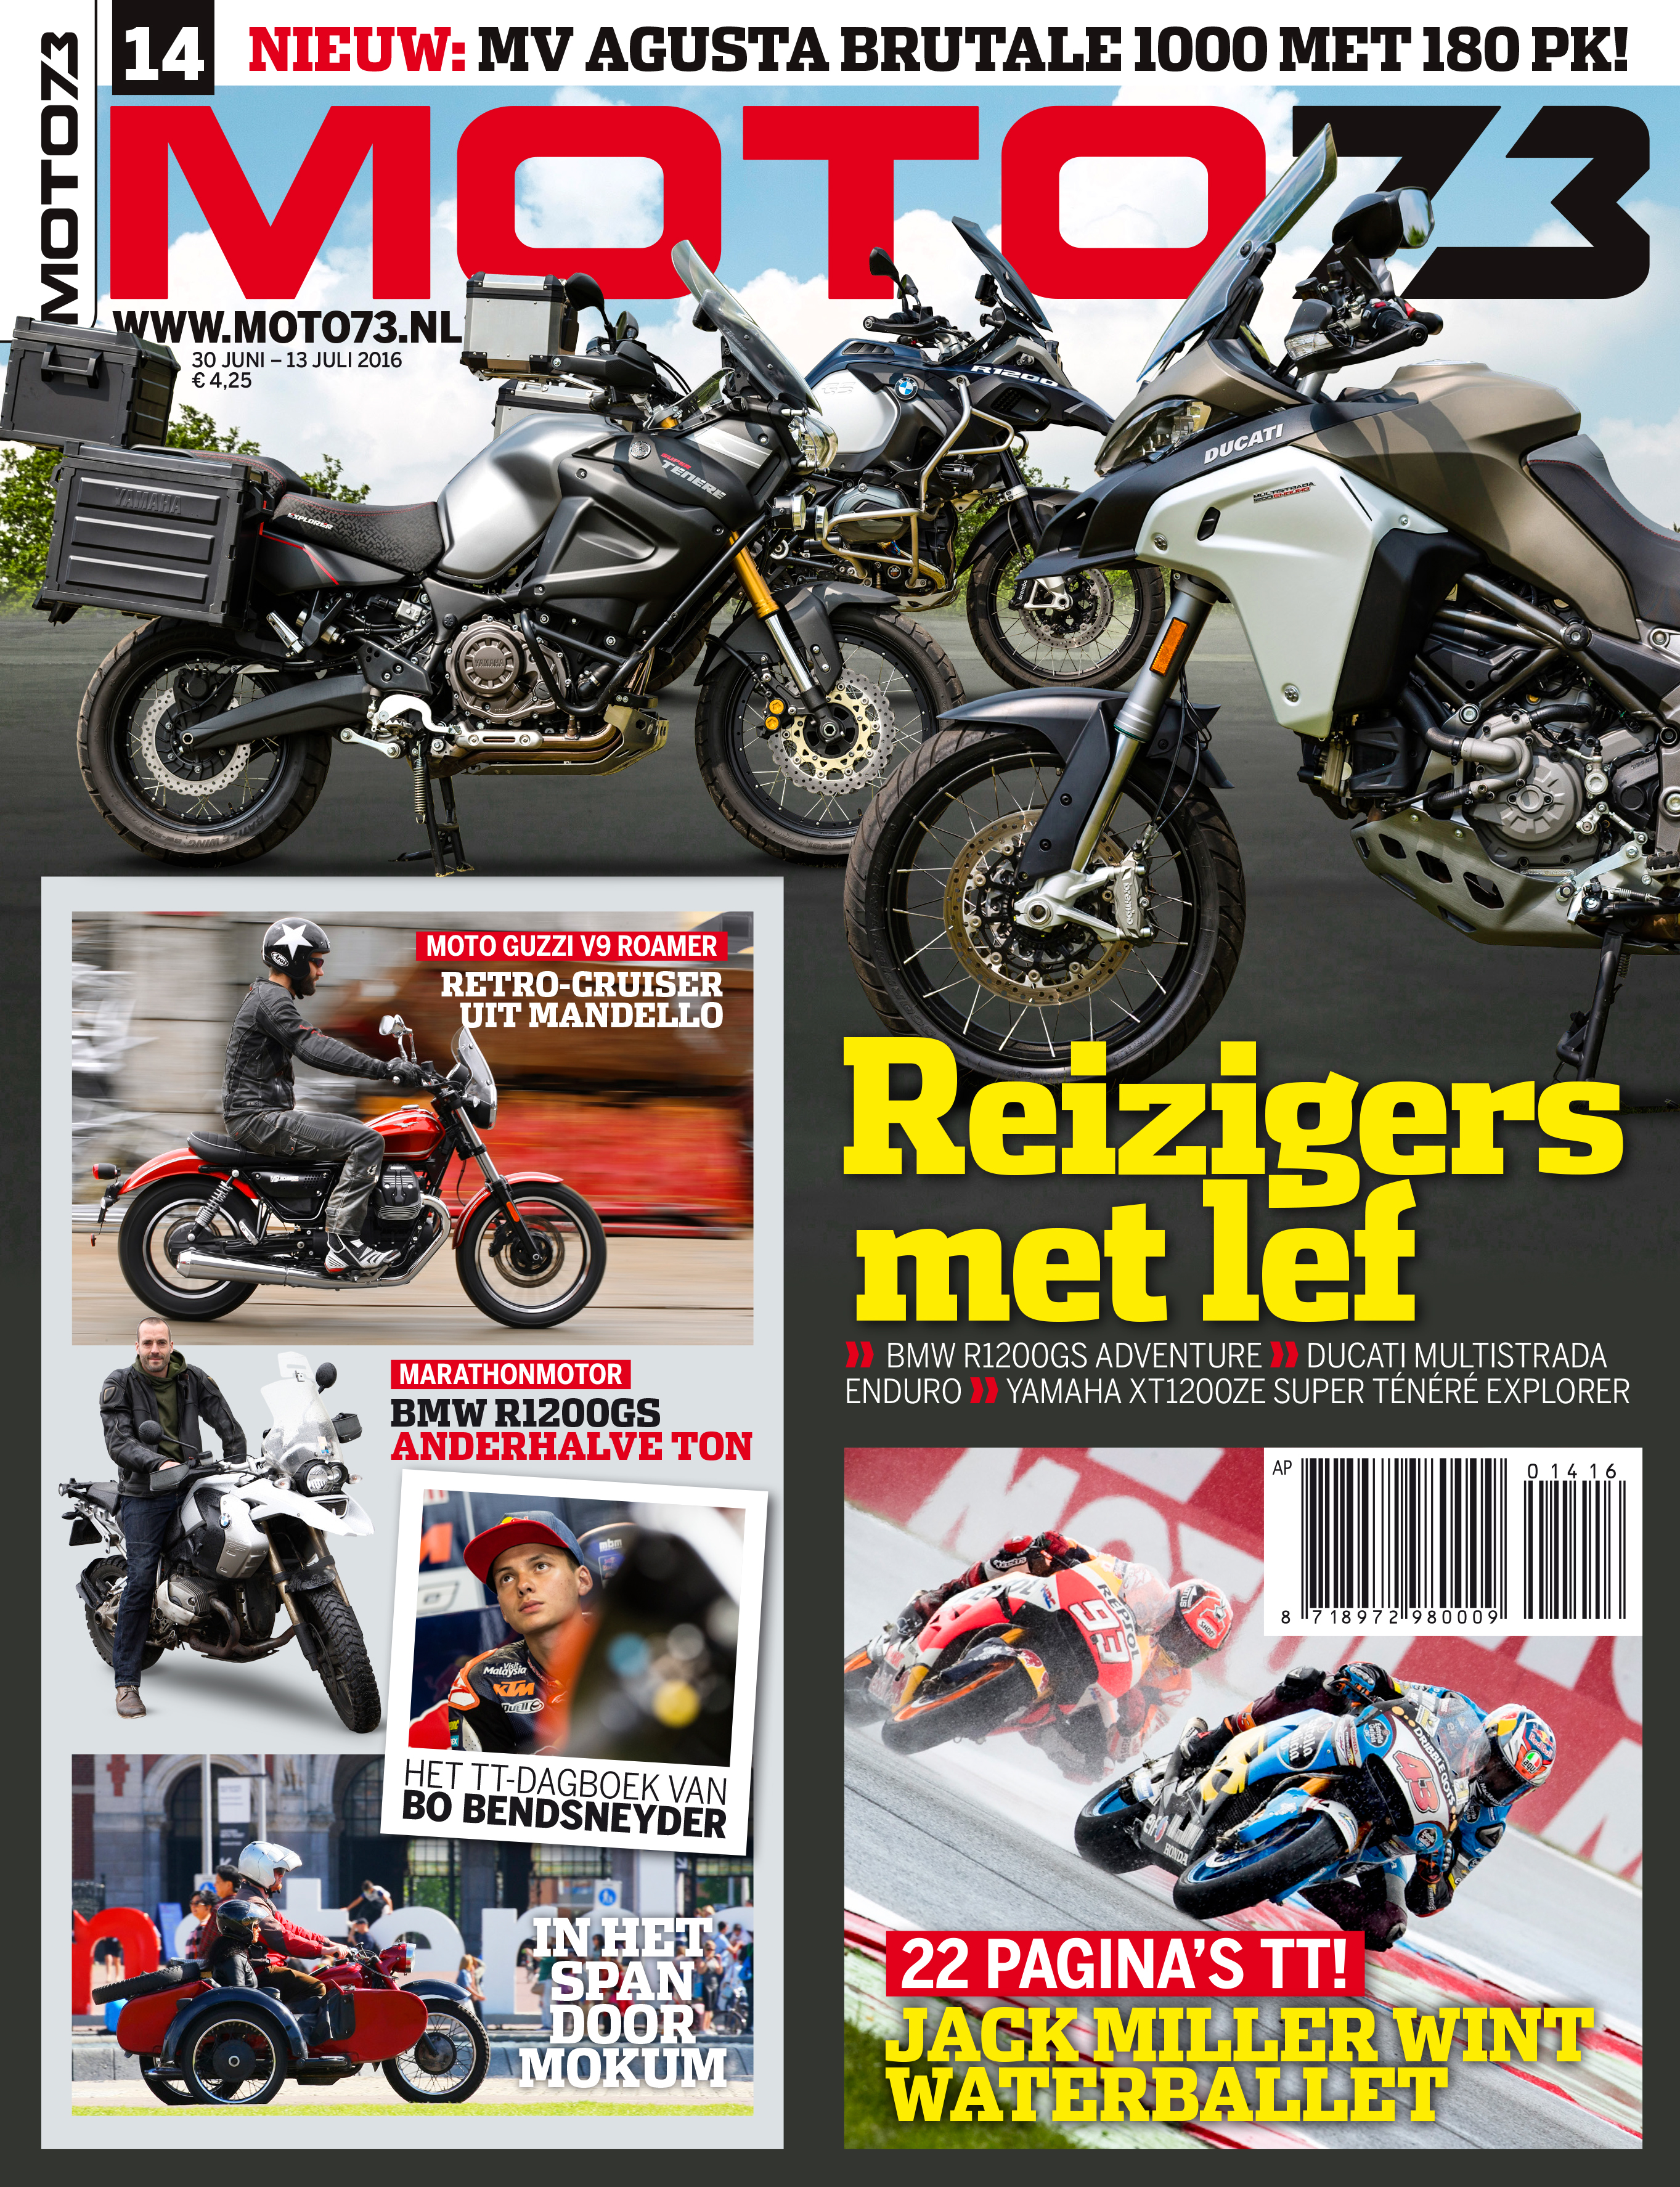 M731614 COVER